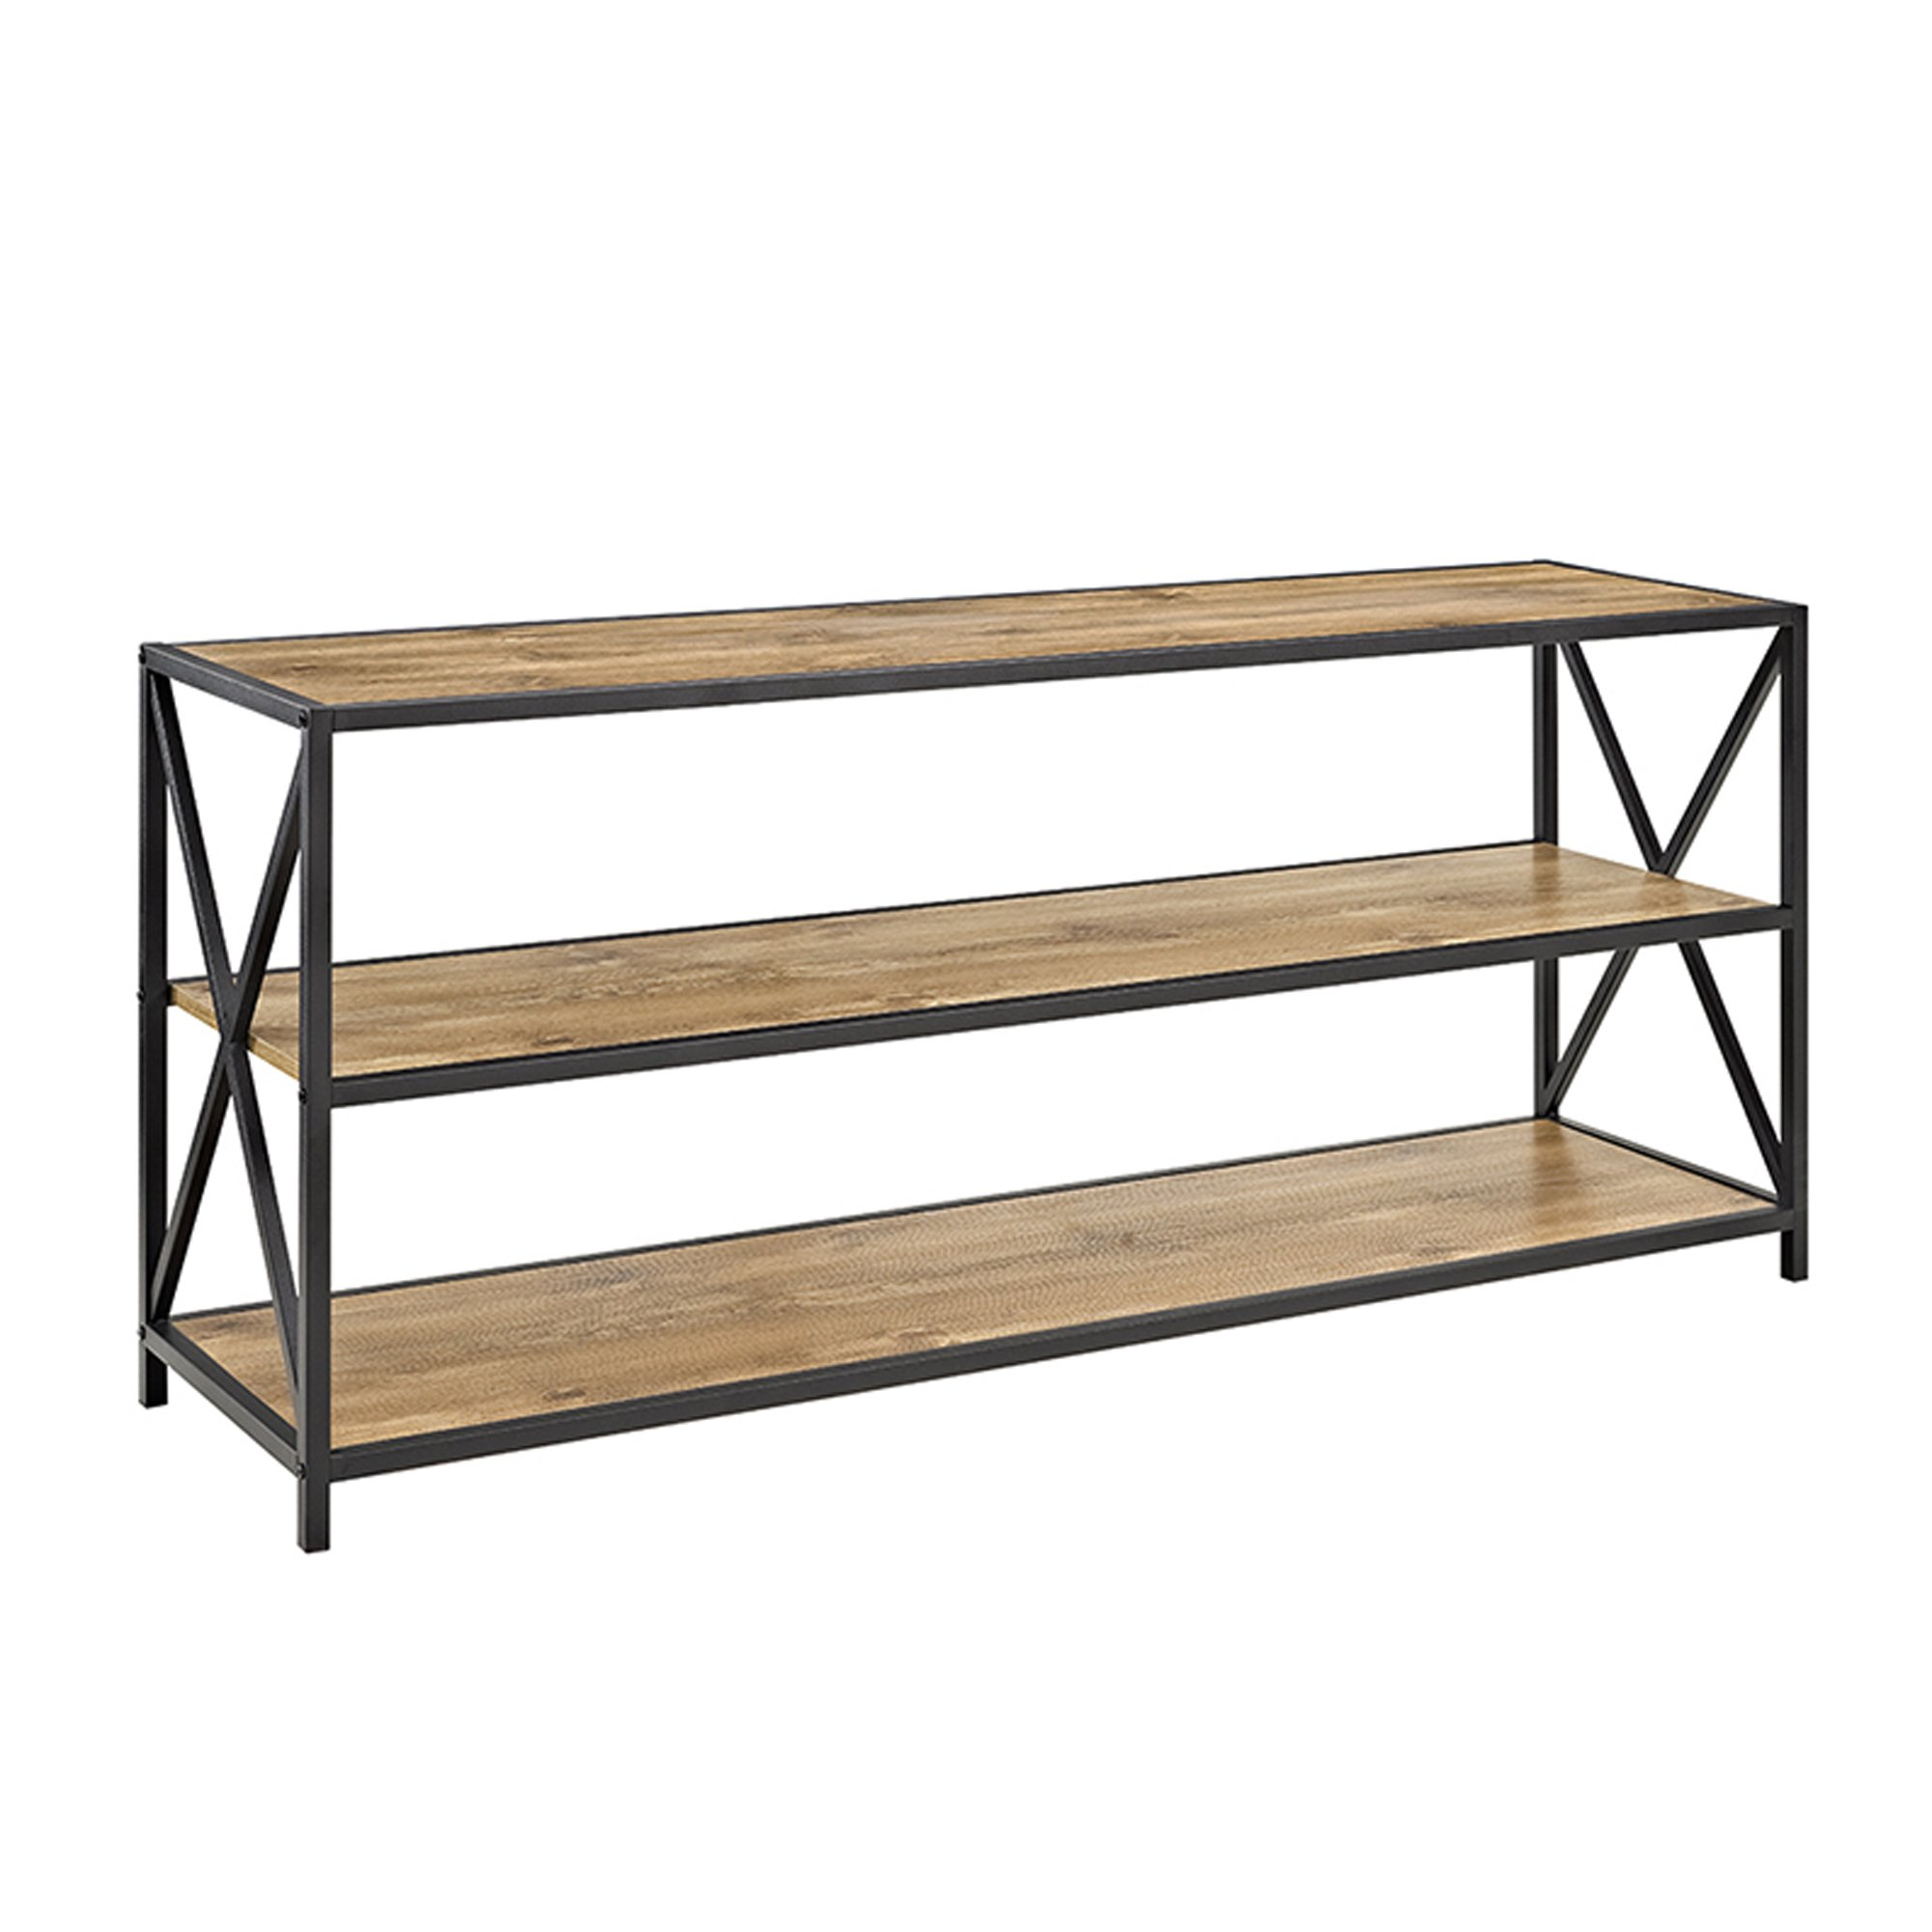 W. Designs X-Frame Metal and Wood Media Bookshelf Barnwood 60''